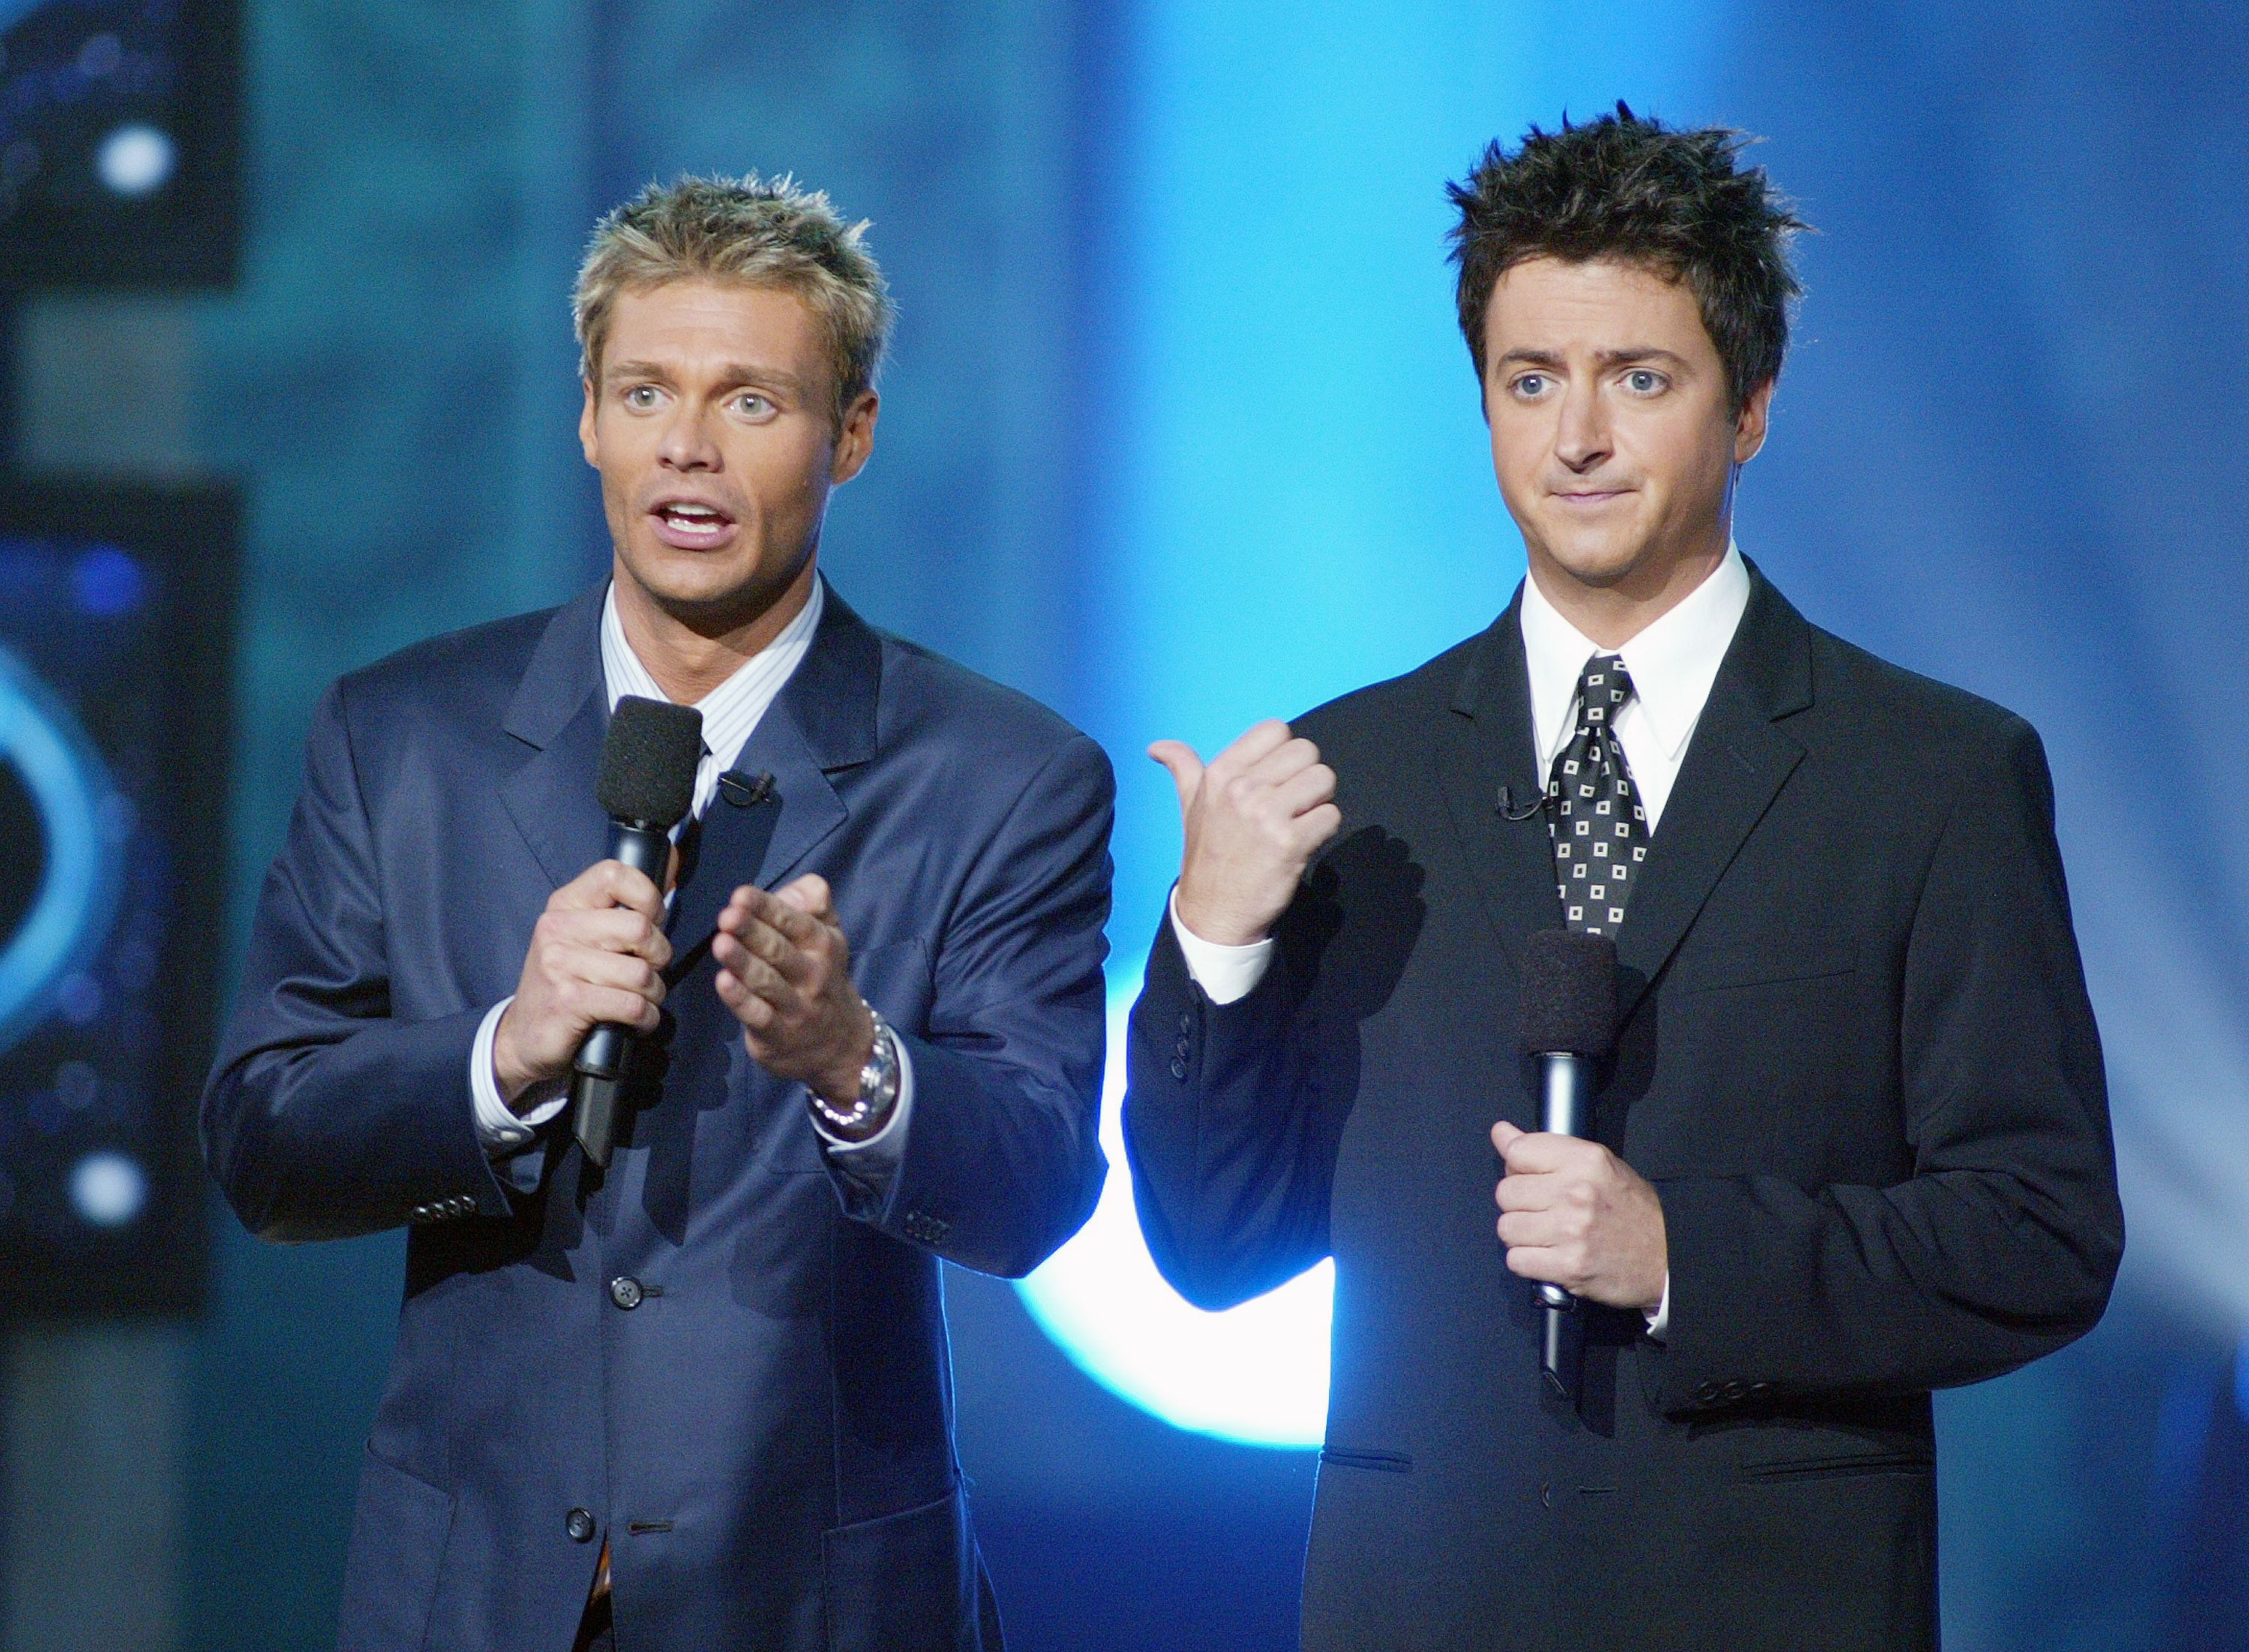 Ryan Seacrest and Brian Dunkleman at FOX-TV's 'American Idol' finale at the Kodak Theatre in Hollywood, Ca. Wednesday, Sept. 4, 2002. Photo  by Kevin Winter/ImageDirect